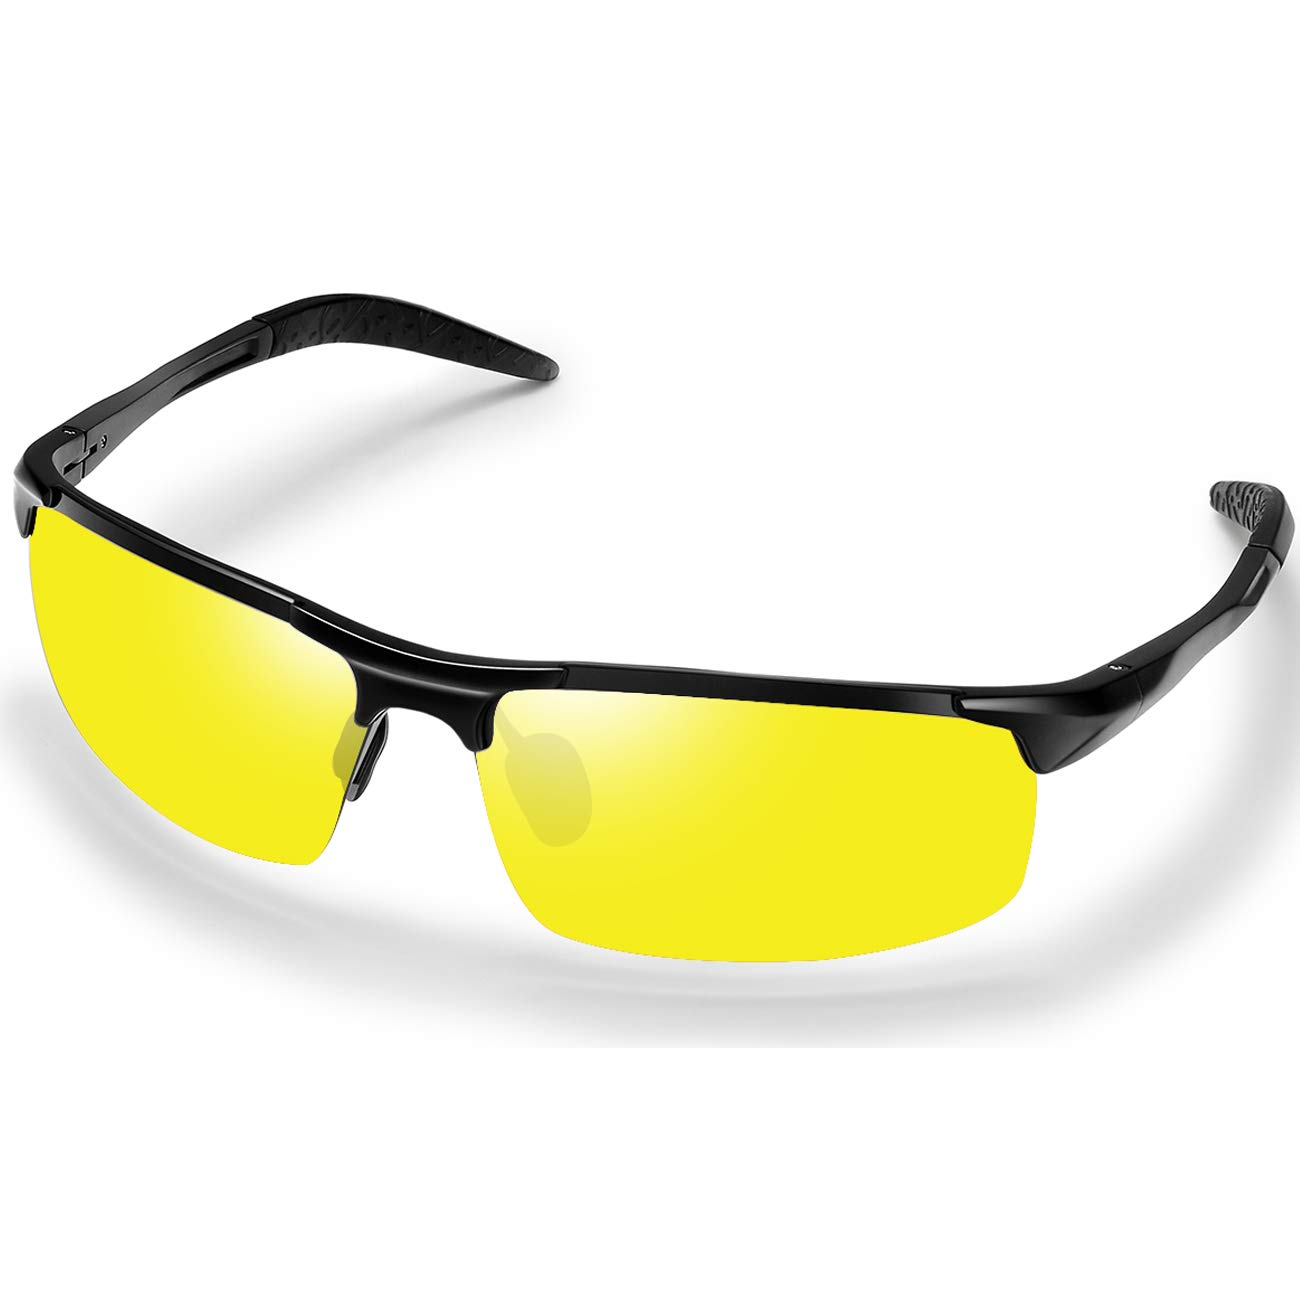 Polarized Sunglasses Sports Sunglasses for Men - FEIDU Polarized Sports Sunglasses for Men Sunglasses Man FD8005 (8005-yellow) by FEIDU